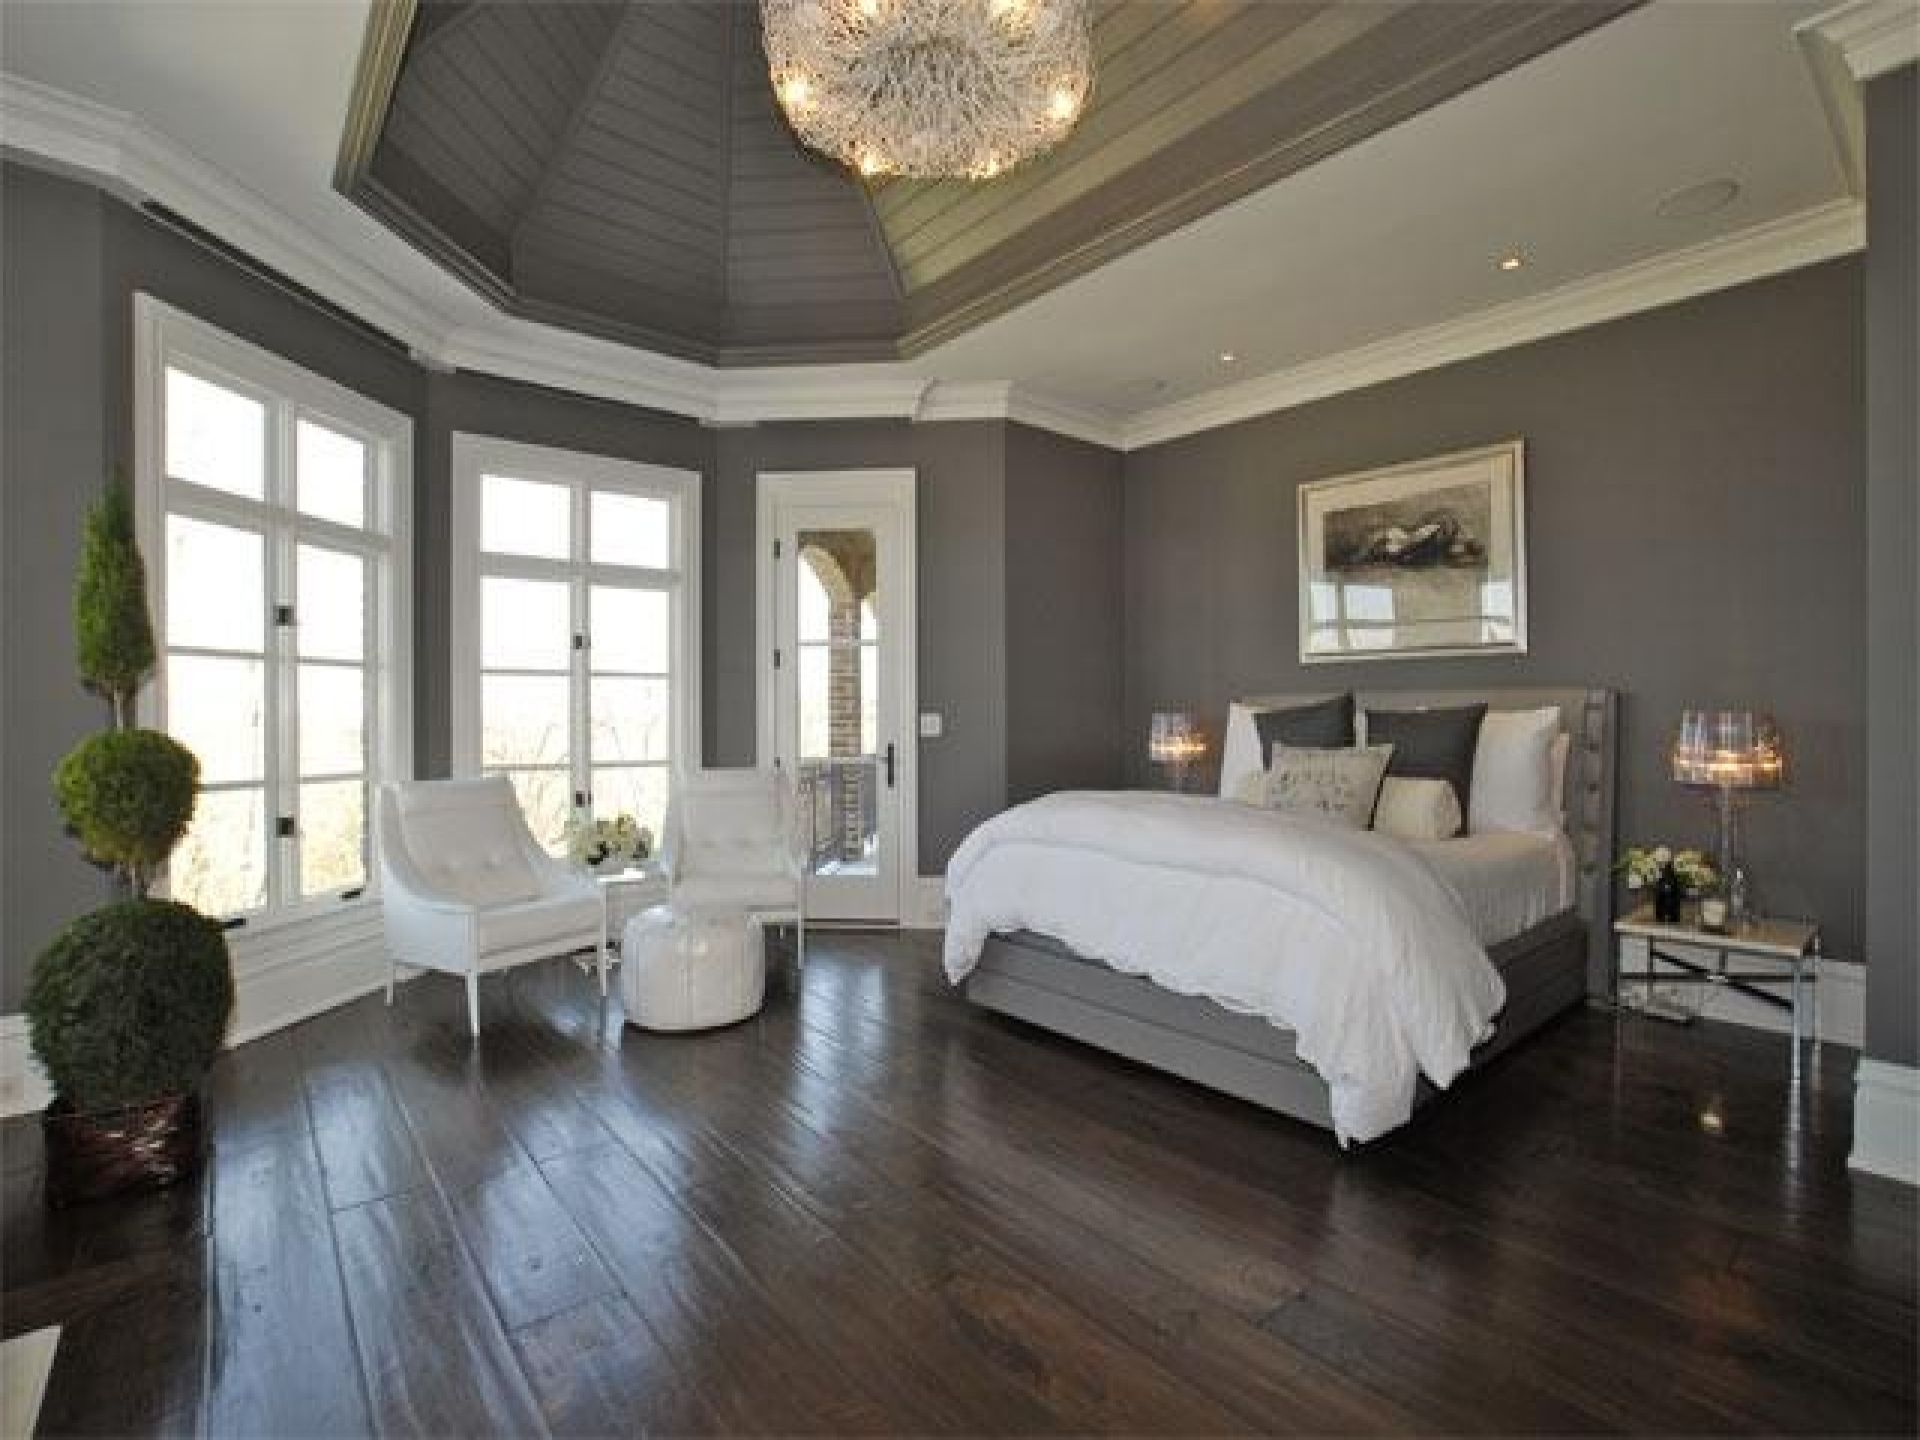 Bedroom colors grey and white - Spring Color Trends Driftwood Gray By Pantone